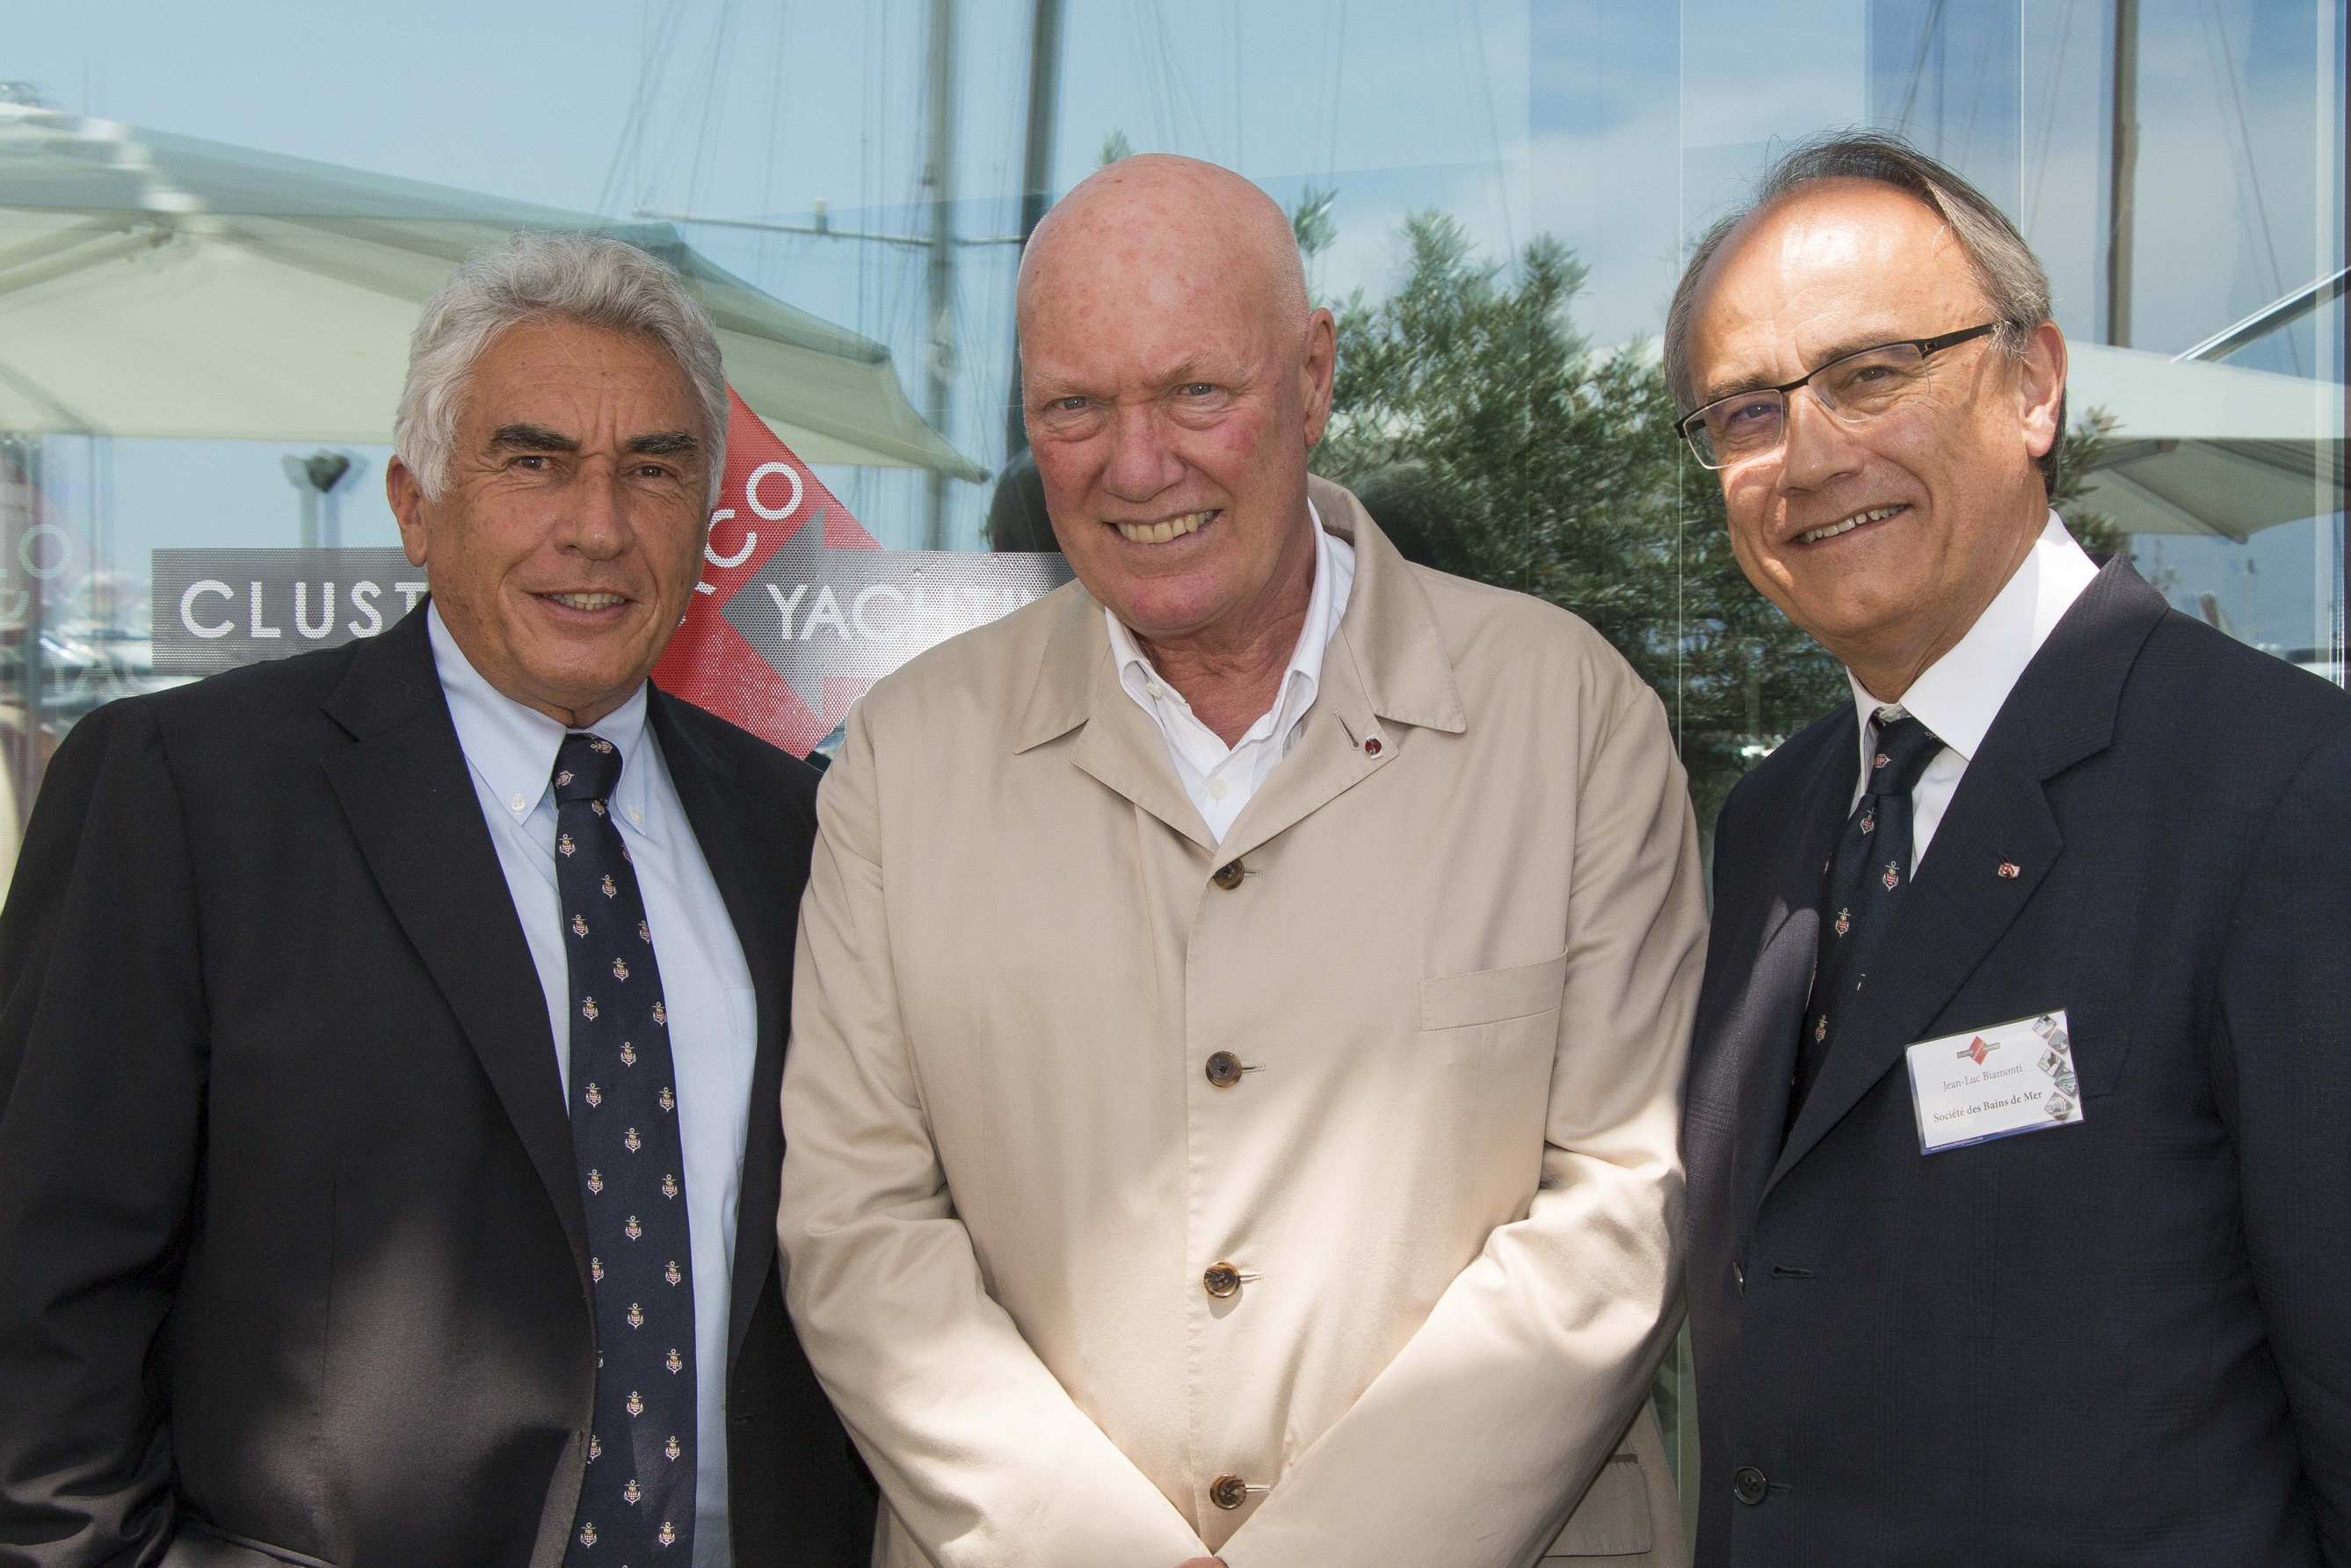 Bernard d'Alessandri, President of the Cluster and YCM General Secretary, Jean-Claude Biver, President of LVMH Watches Division and CEO of TAG Heuer, and Jean-Luc Biamonti, Société des Bains de Mer CEO - ©Charly Gallo